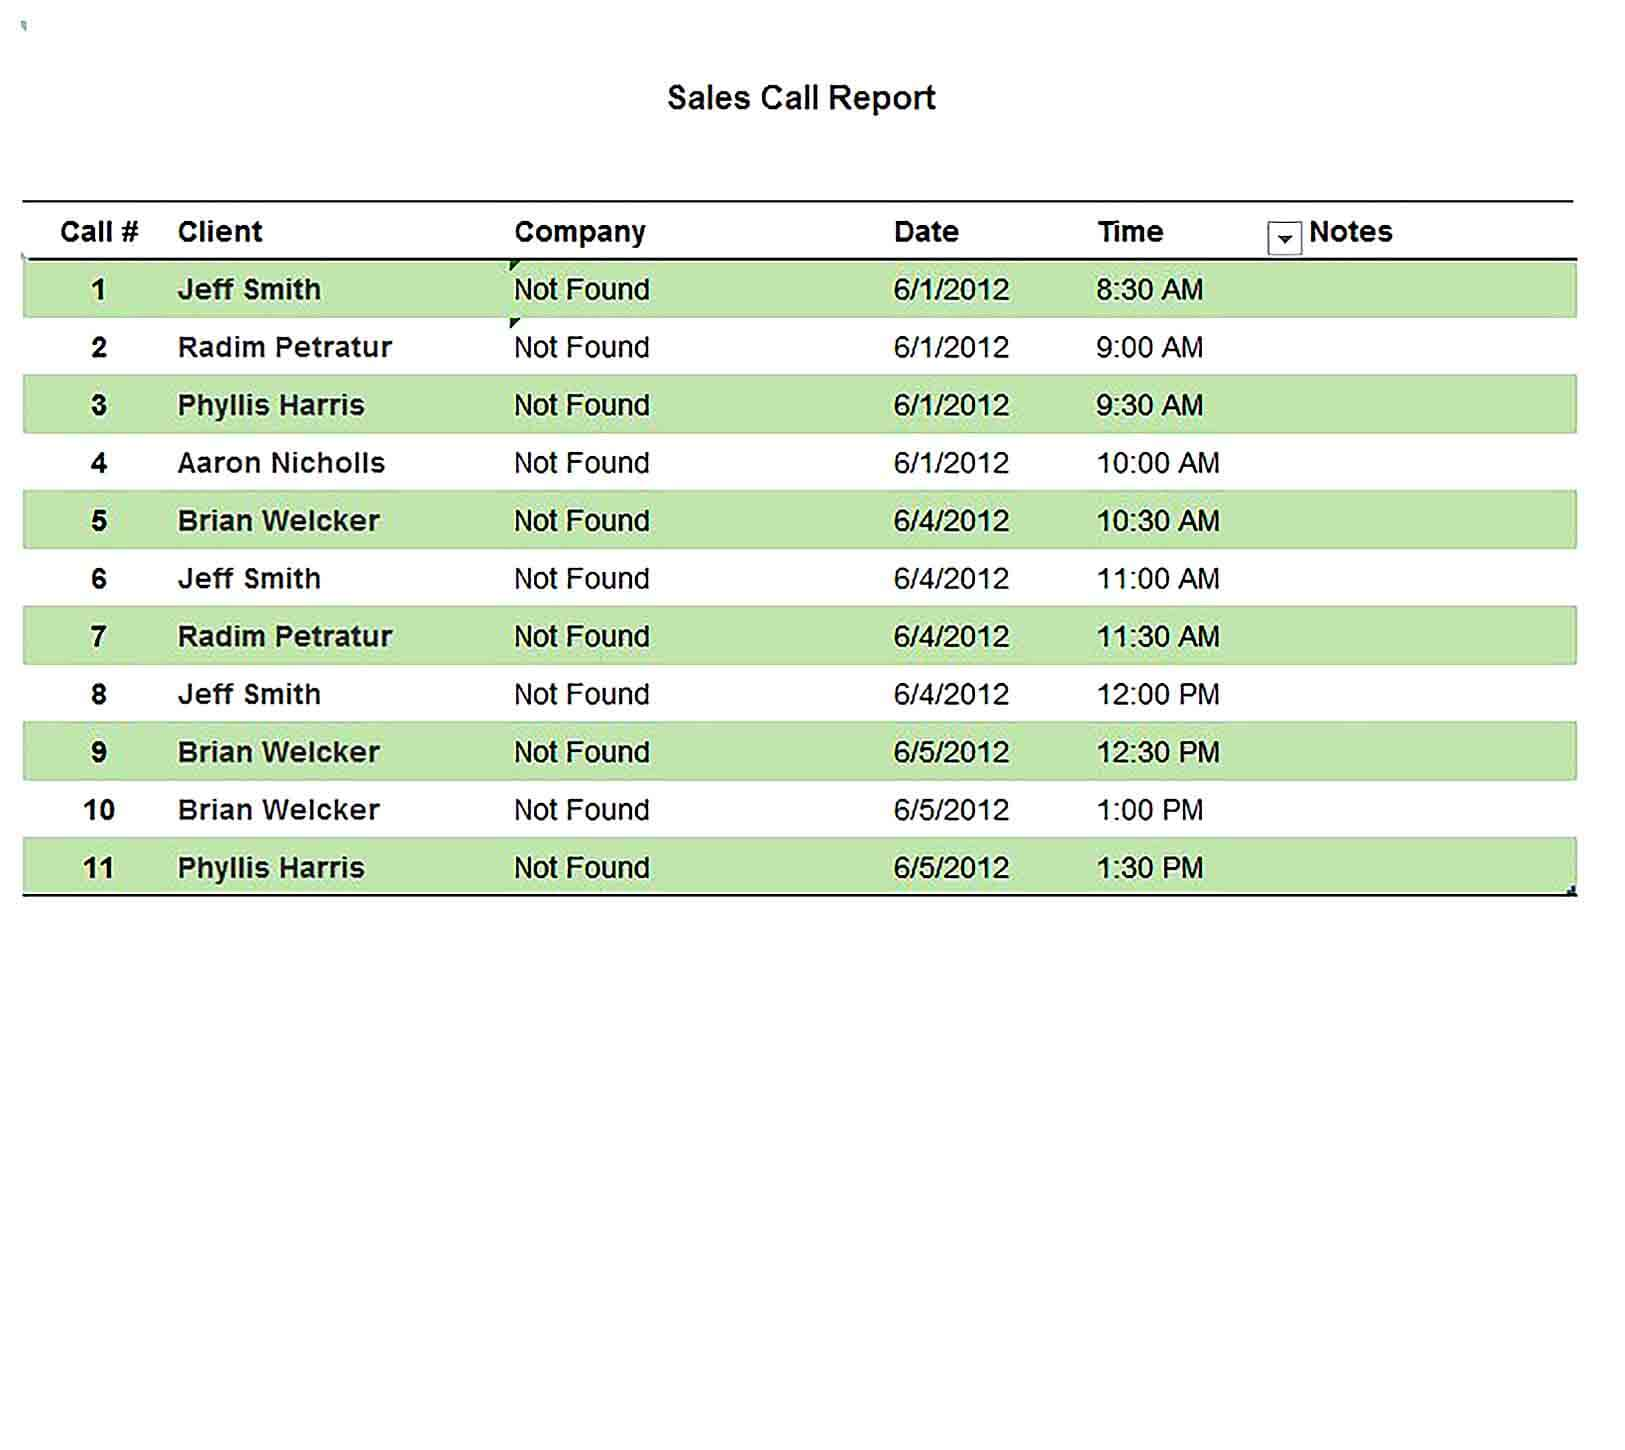 Sample Sales Call Report Template in Excel